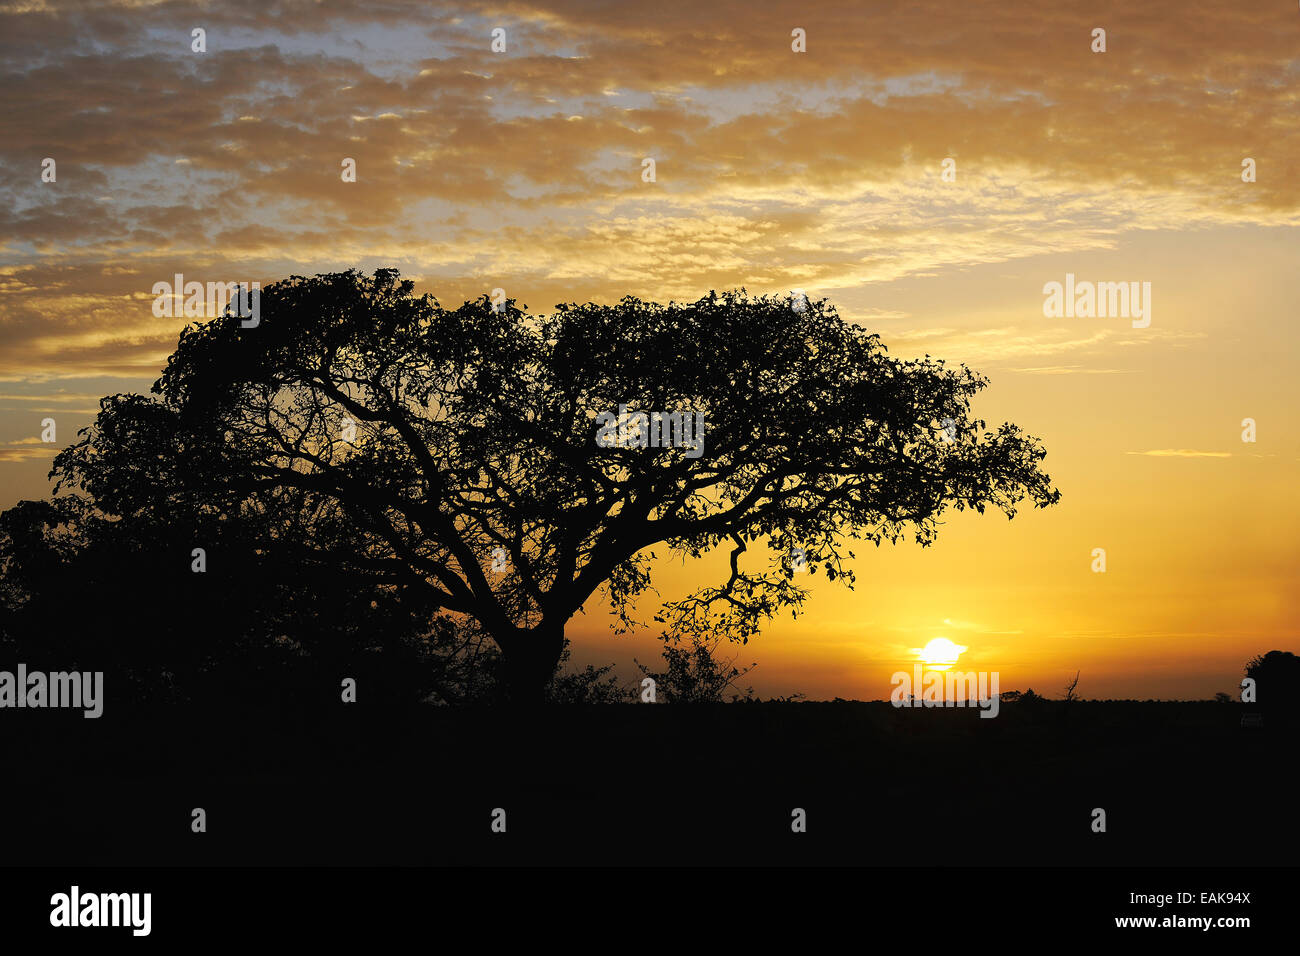 Landscape of Central Cameroon in the sunset, Adamawa Region, Cameroon - Stock Image